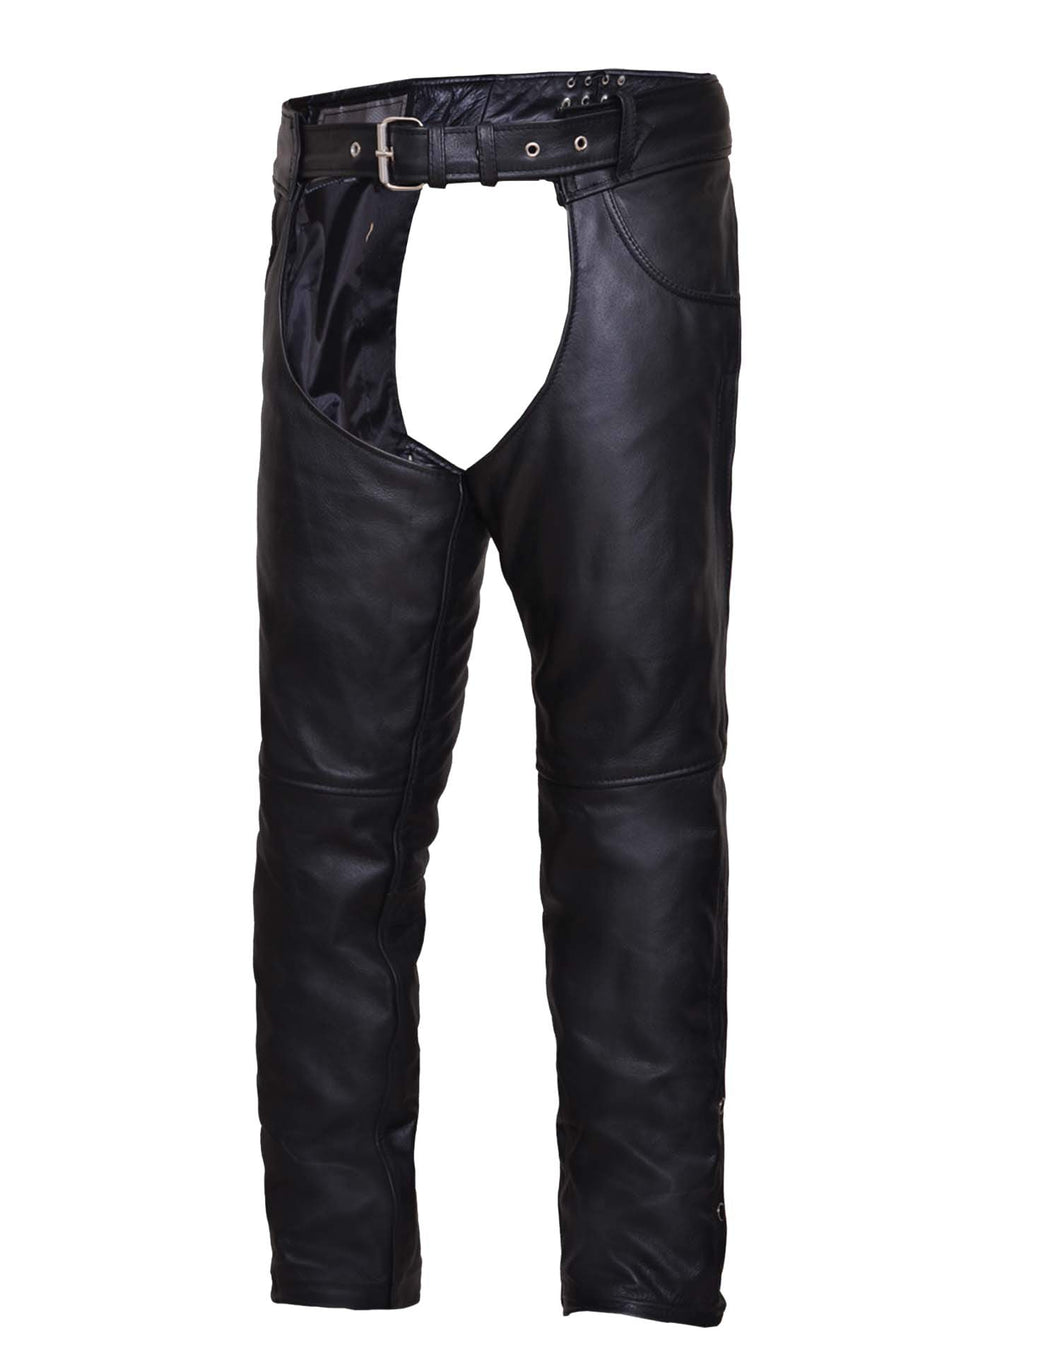 UNIK Unisex Premium Leather Motorcycle Chaps